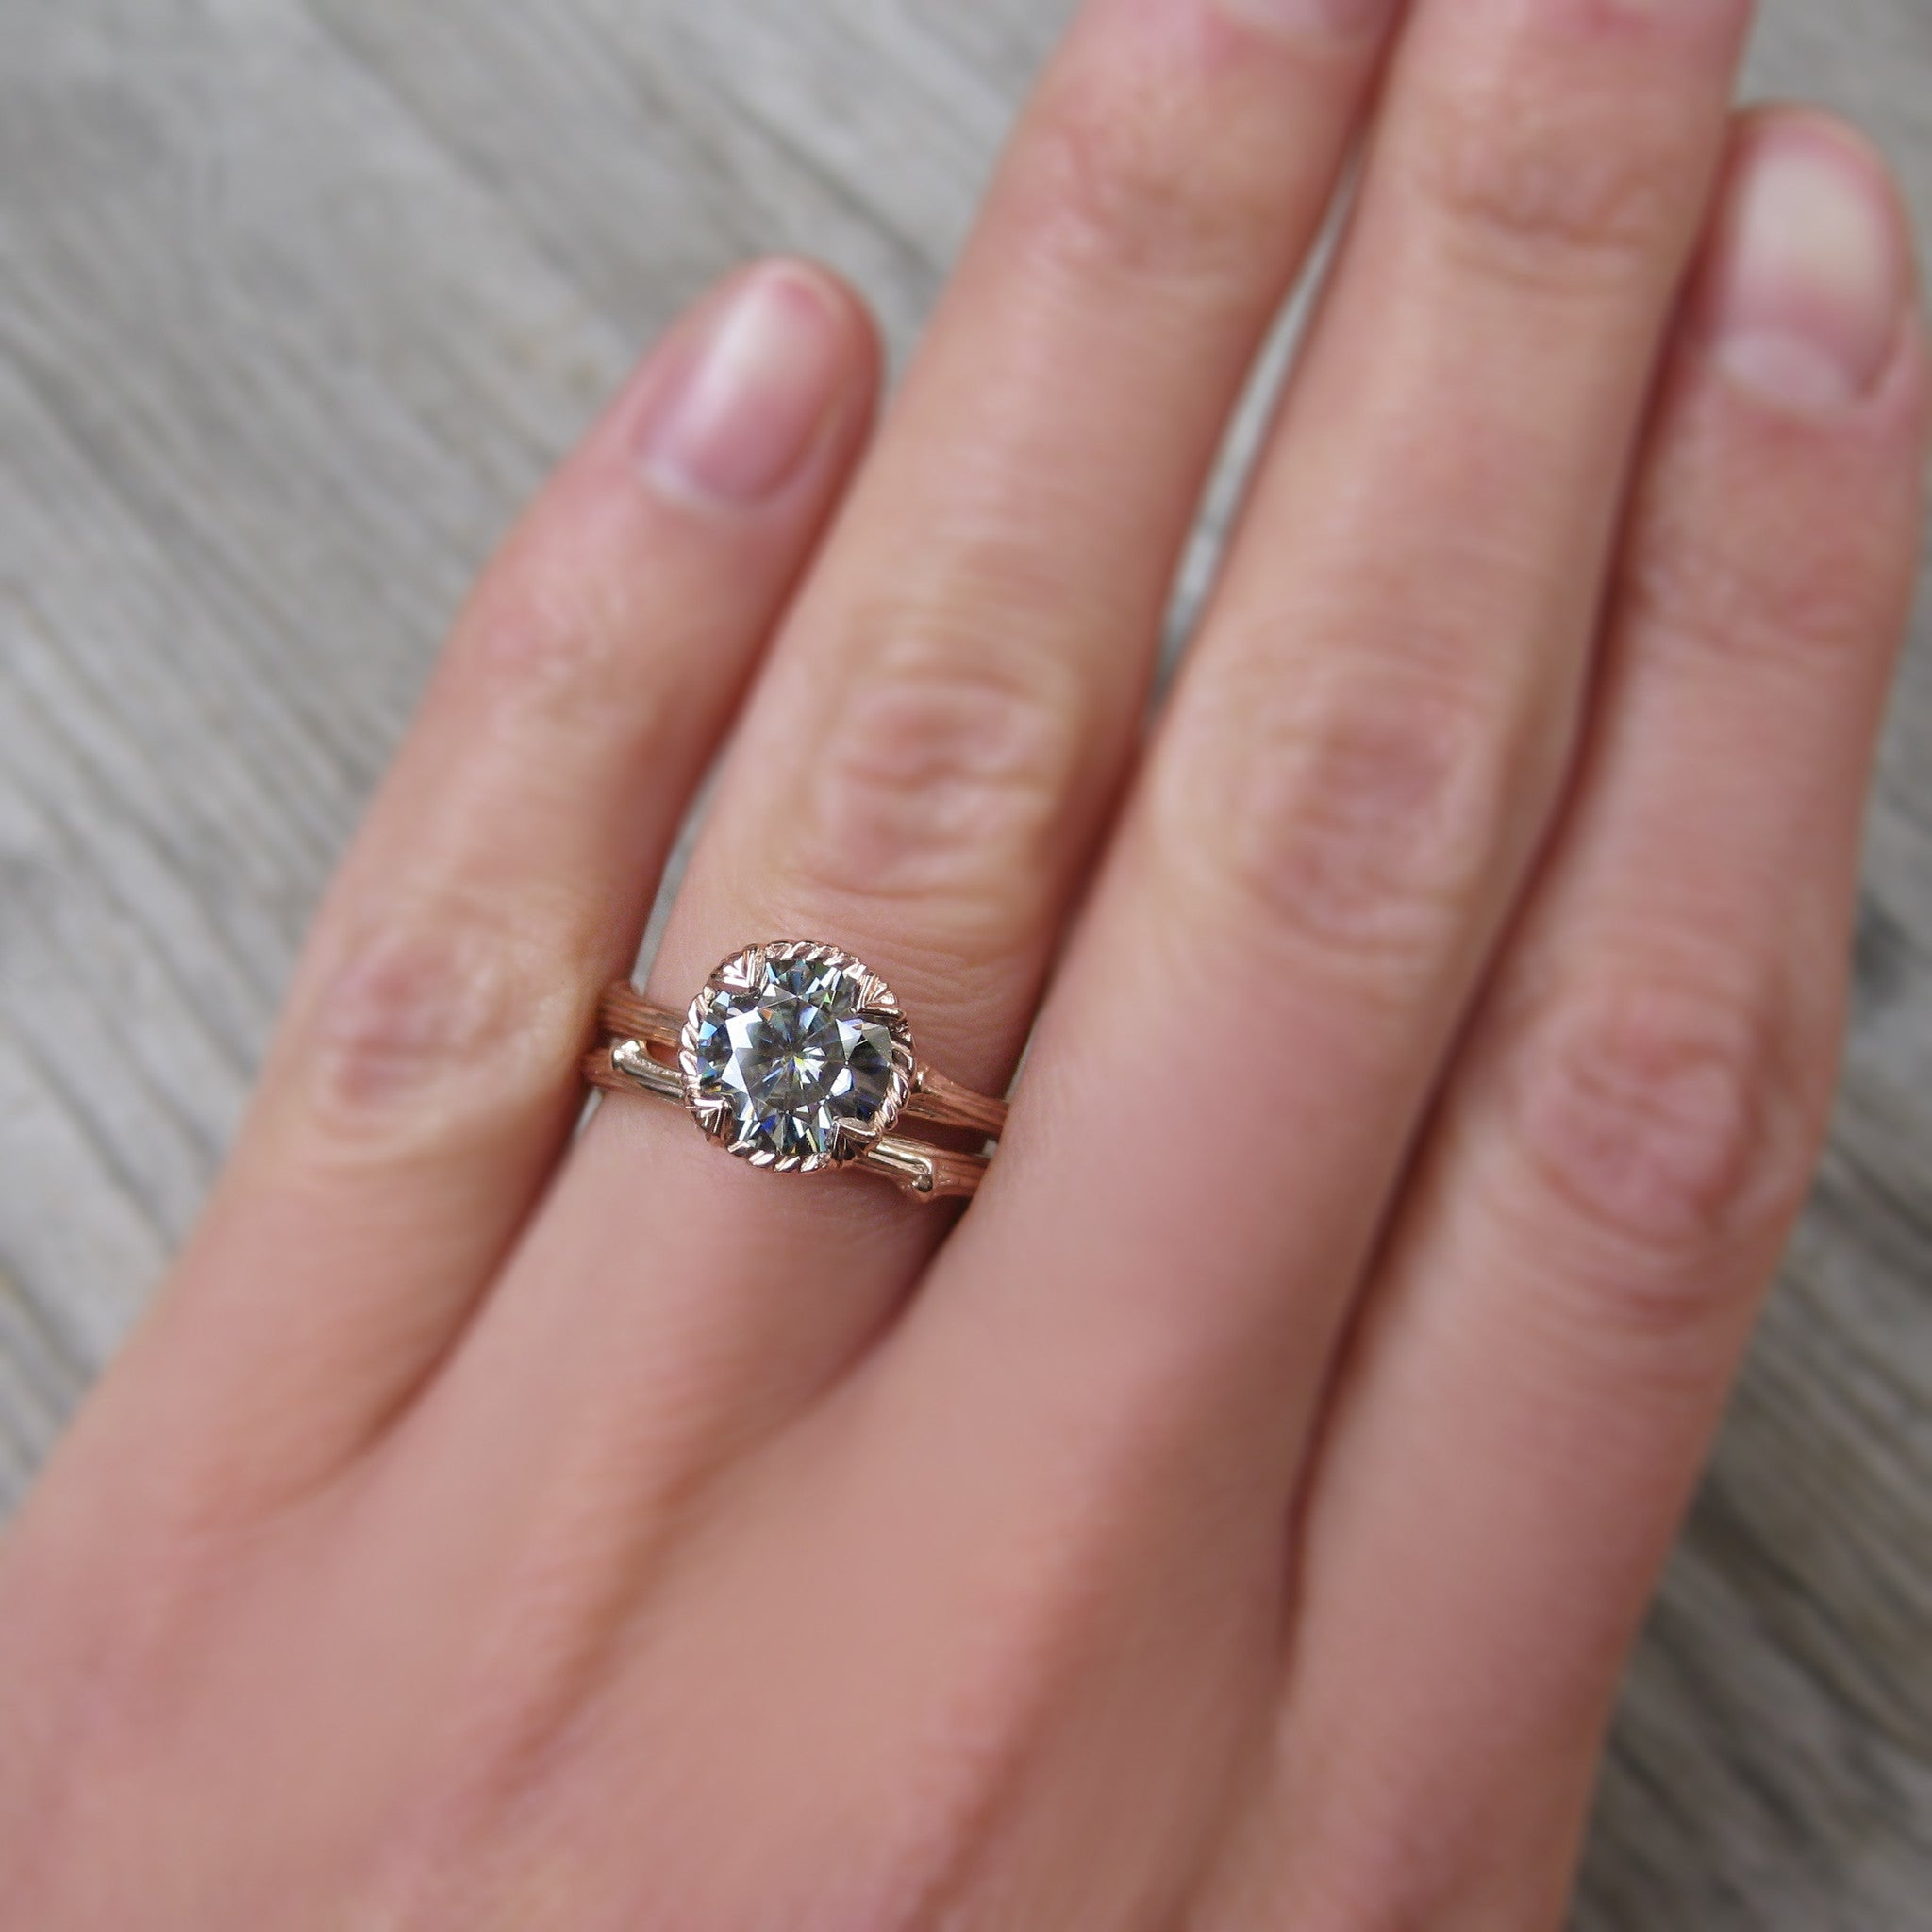 Grey Moissanite Twig Engagement Ring, 2ct | Kristin Coffin Jewelry